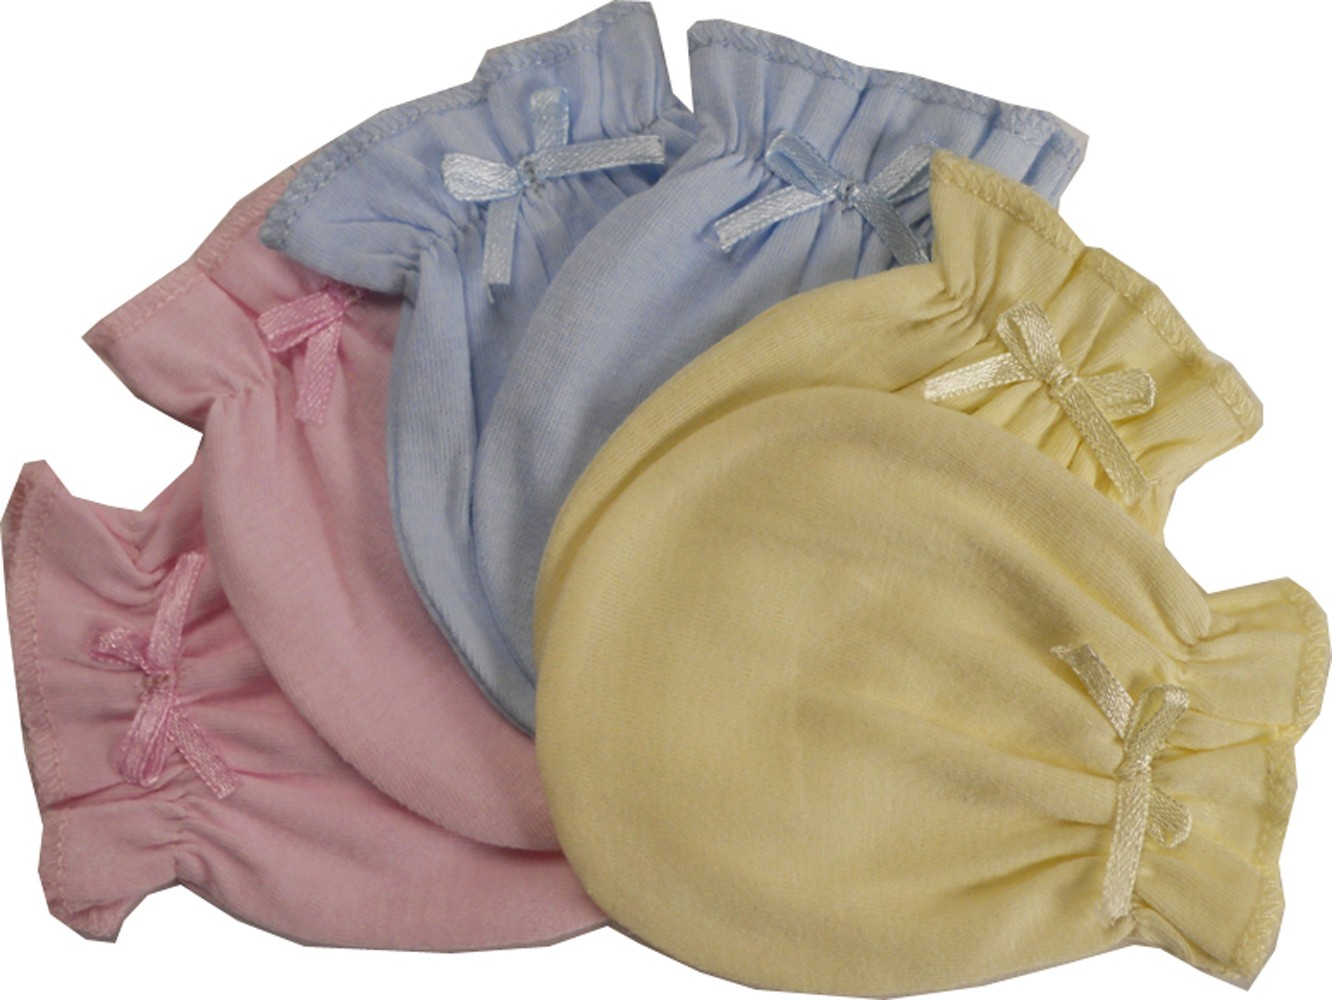 Wholesale baby clothes supplier direct from clothing manufacturer.